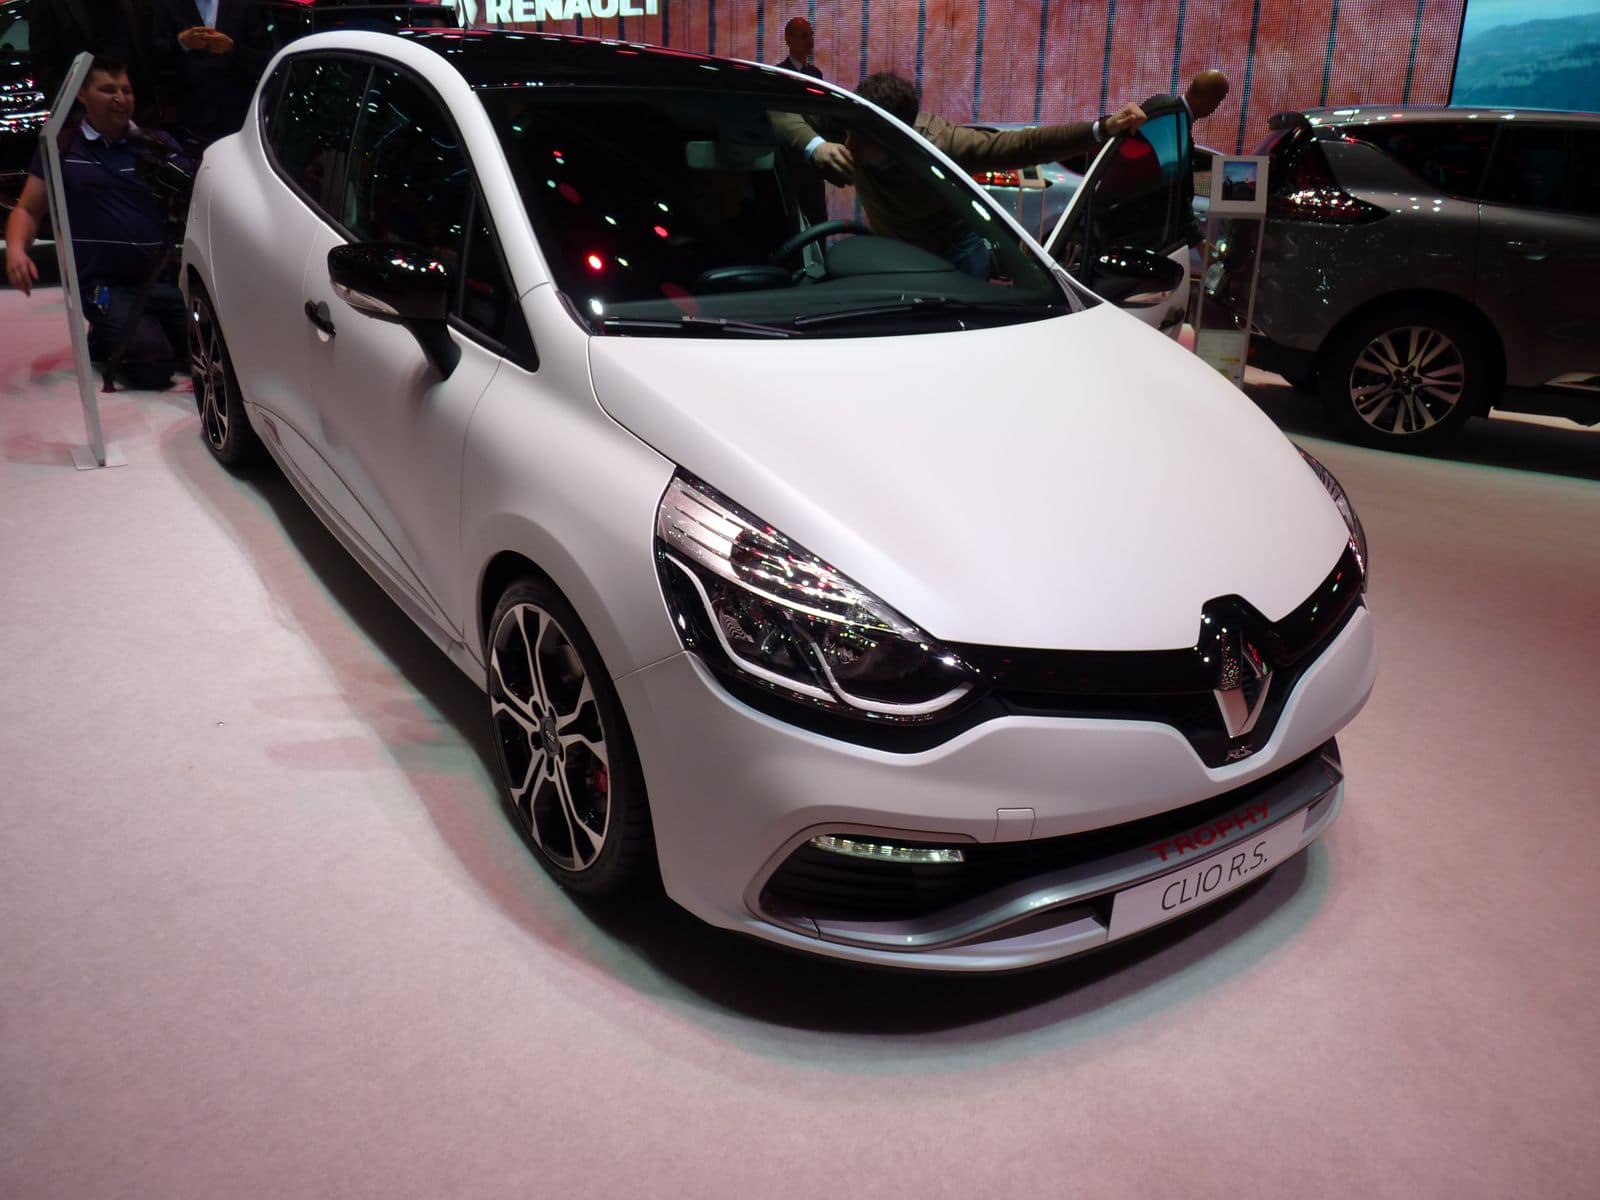 la renault clio rs trophy atteint les 220 ch. Black Bedroom Furniture Sets. Home Design Ideas